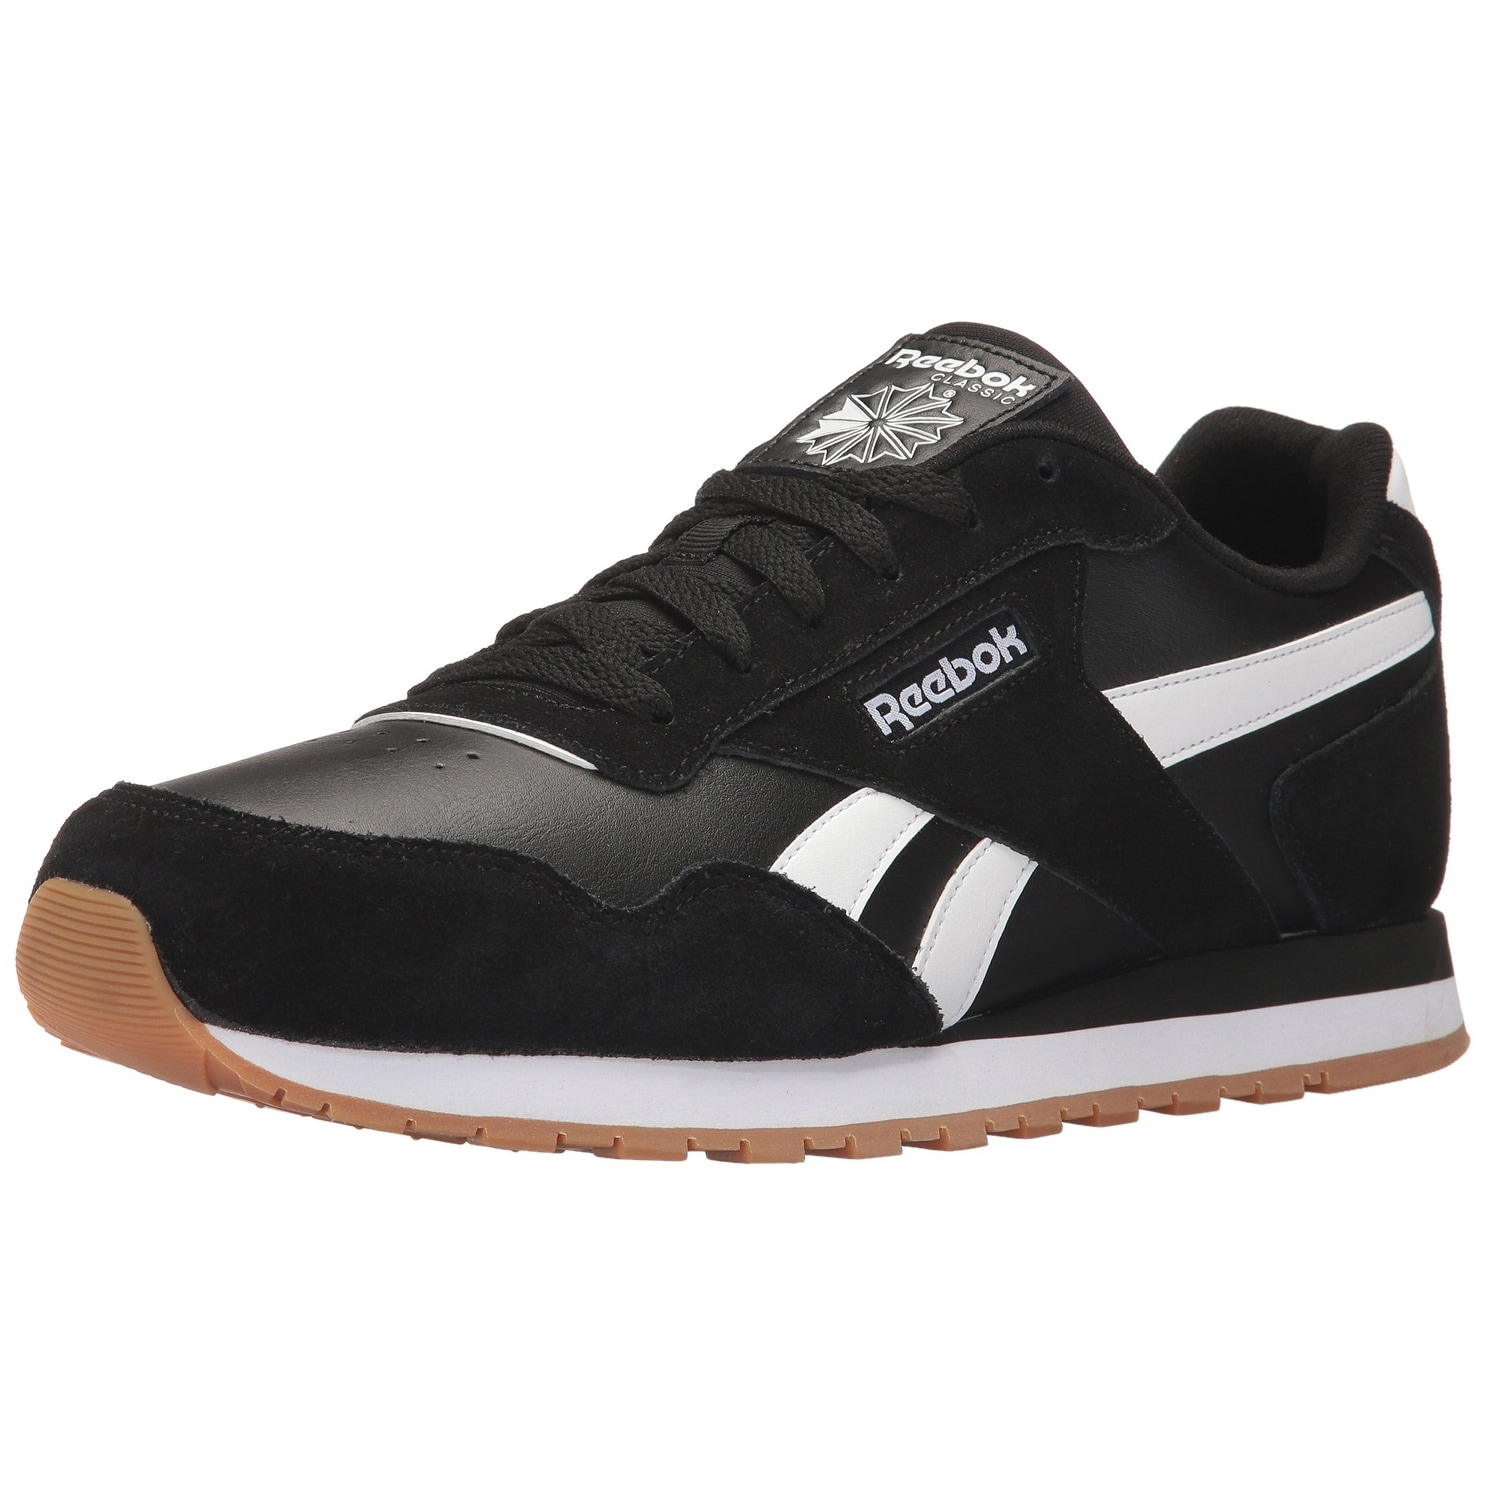 8d98374b32d Shop Multi Reebok Clothing   Shoes